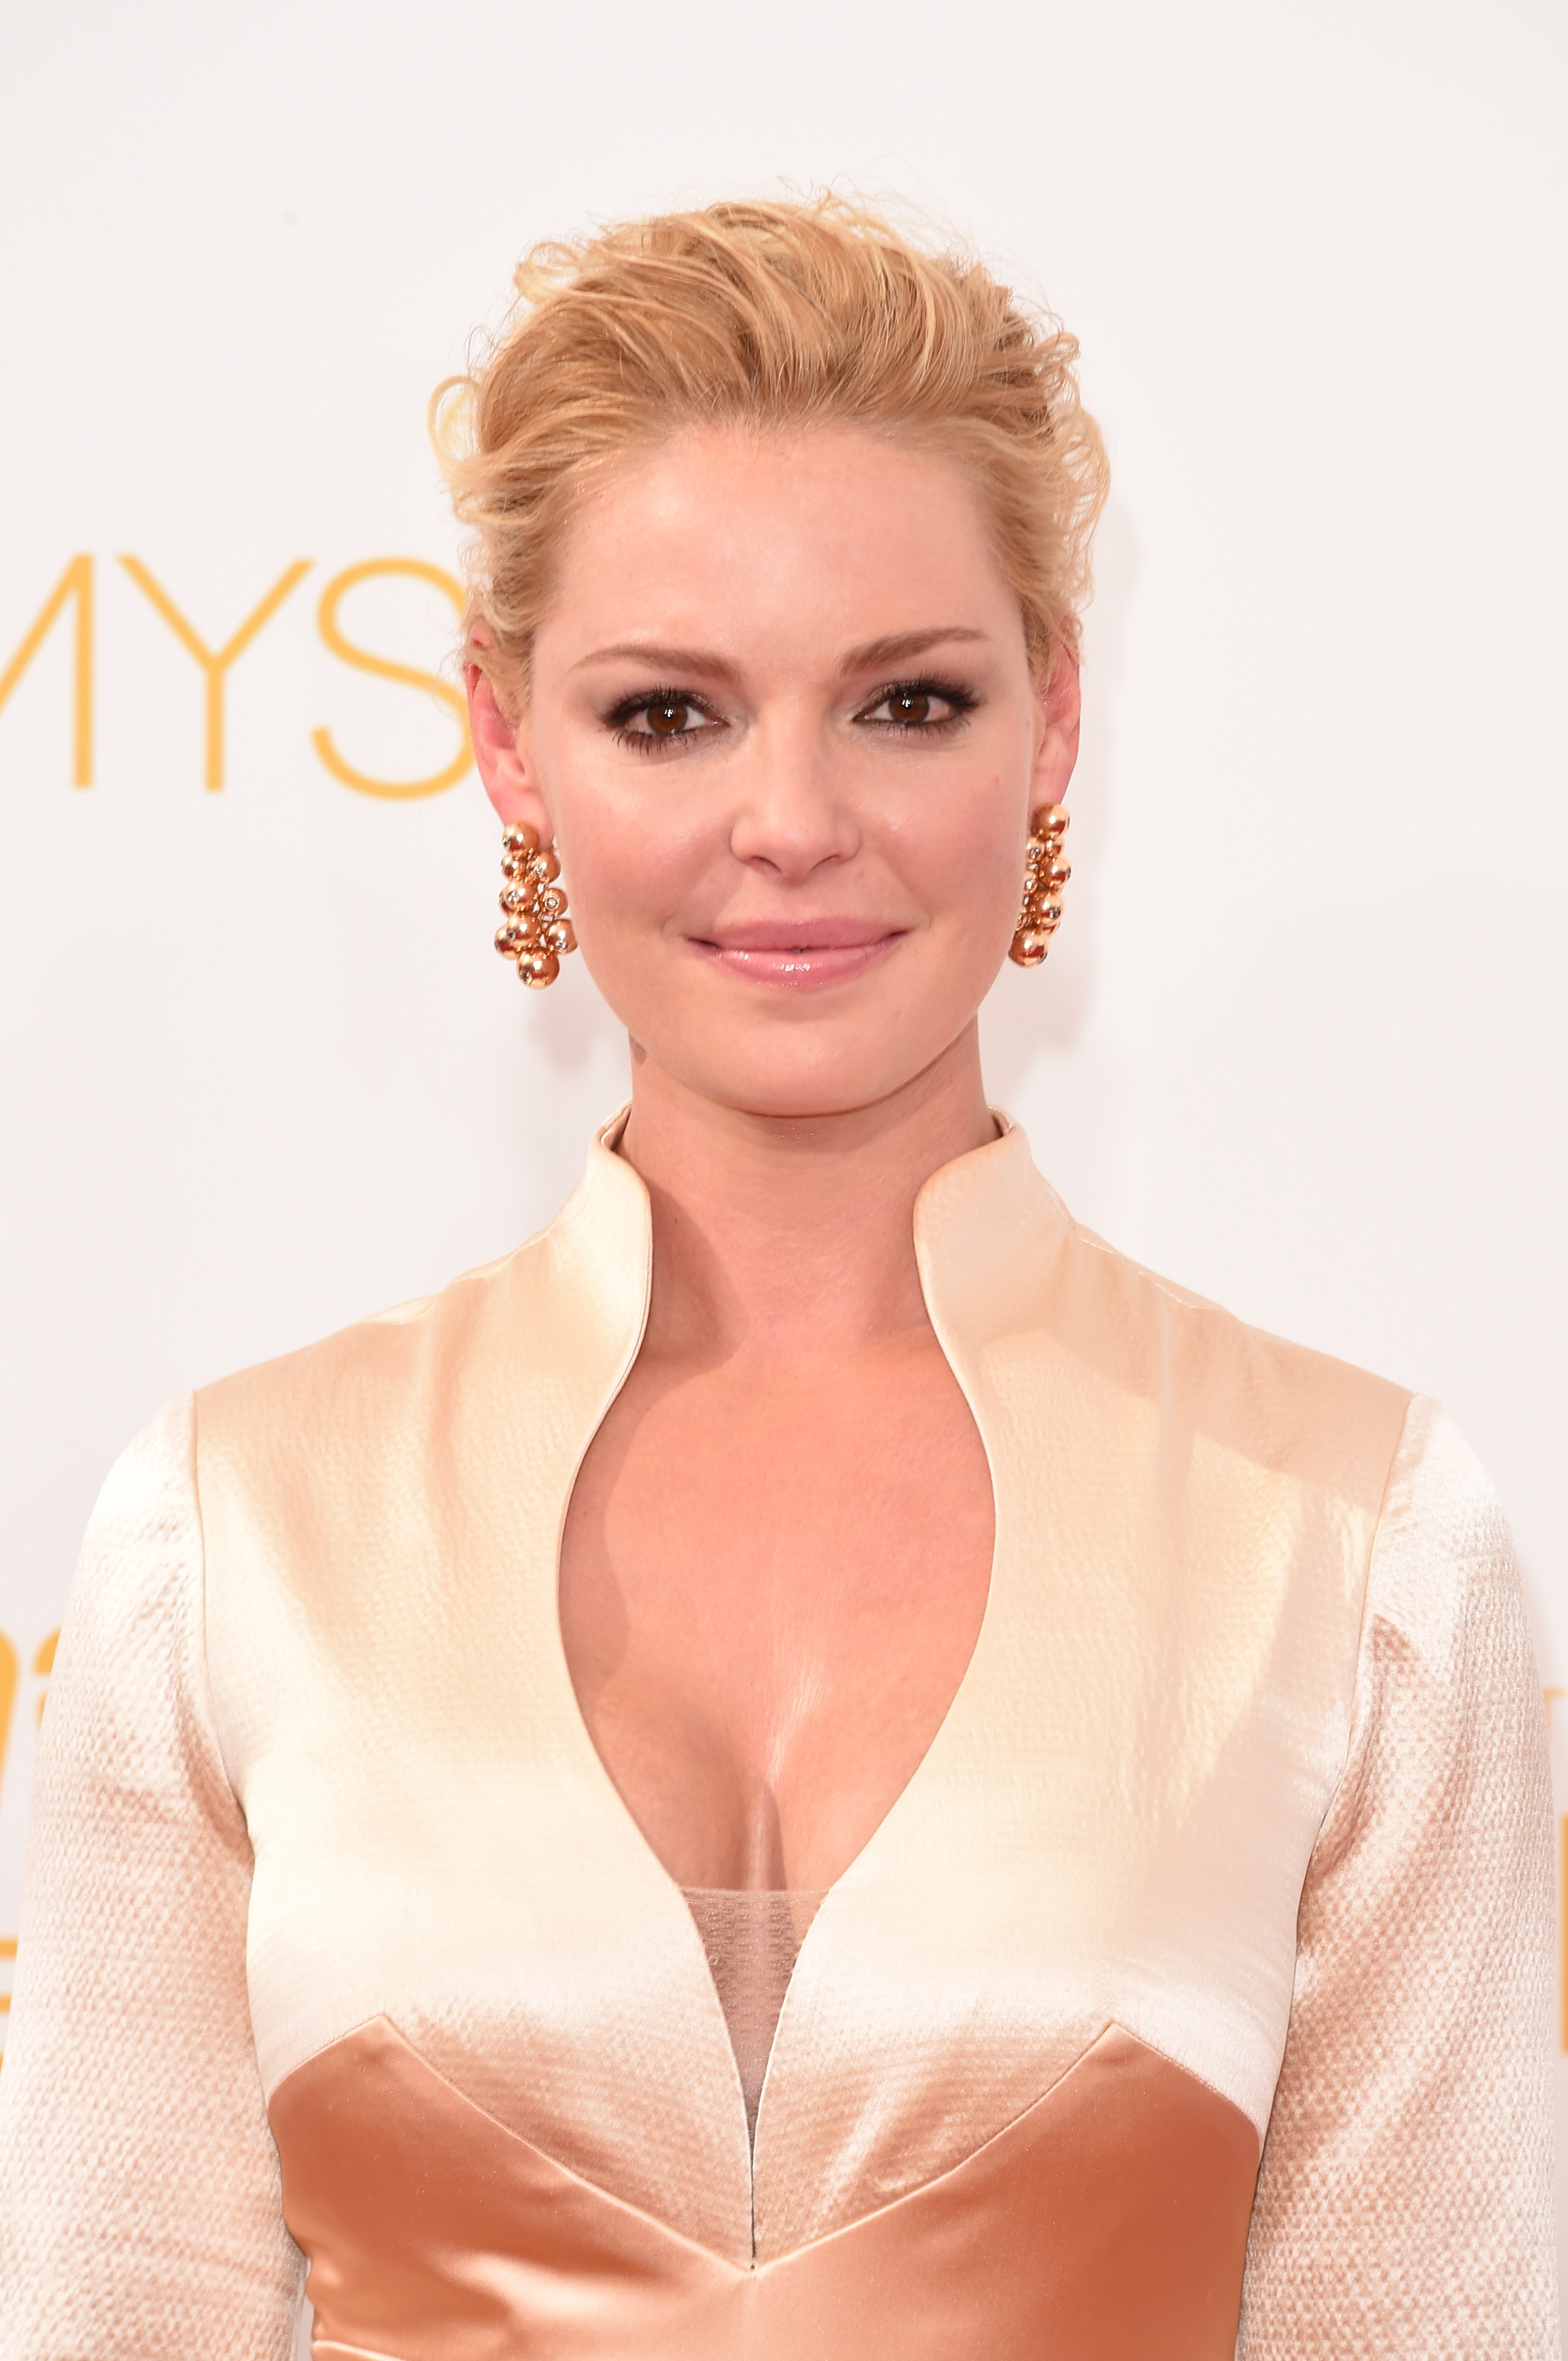 Actress Katherine Heigl attends the 66th Annual Primetime Emmy Awards held at Nokia Theatre L.A. Live on August 25, 2014, in Los Angeles, California. (Getty Images)